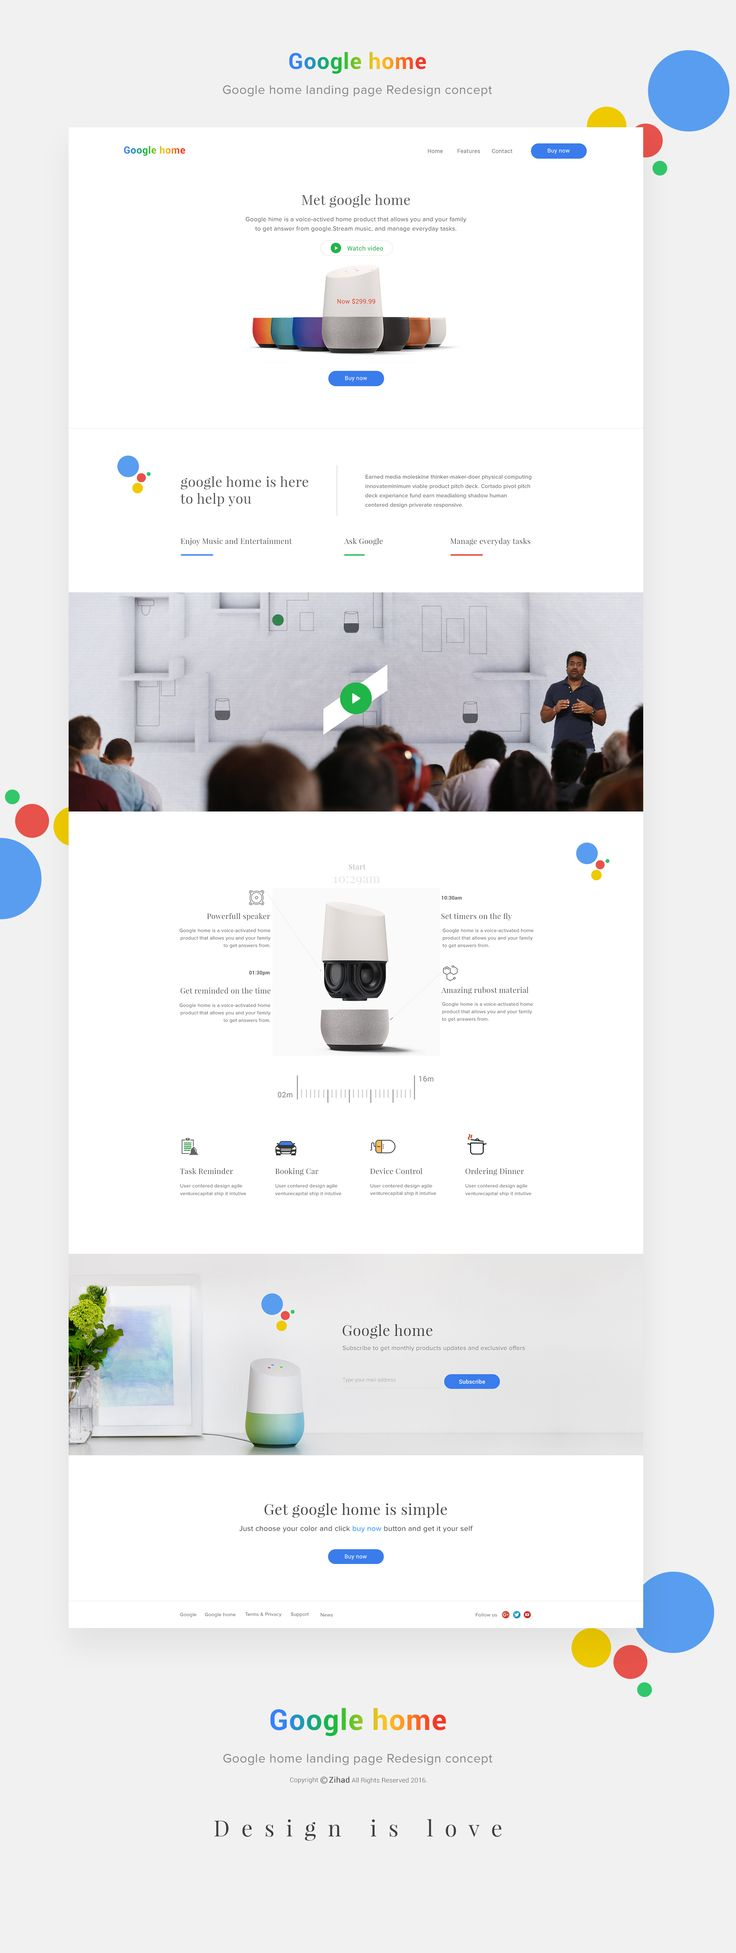 1000 ideas about mobile landing page on pinterest landing pages landing page examples and - Google home page design ...